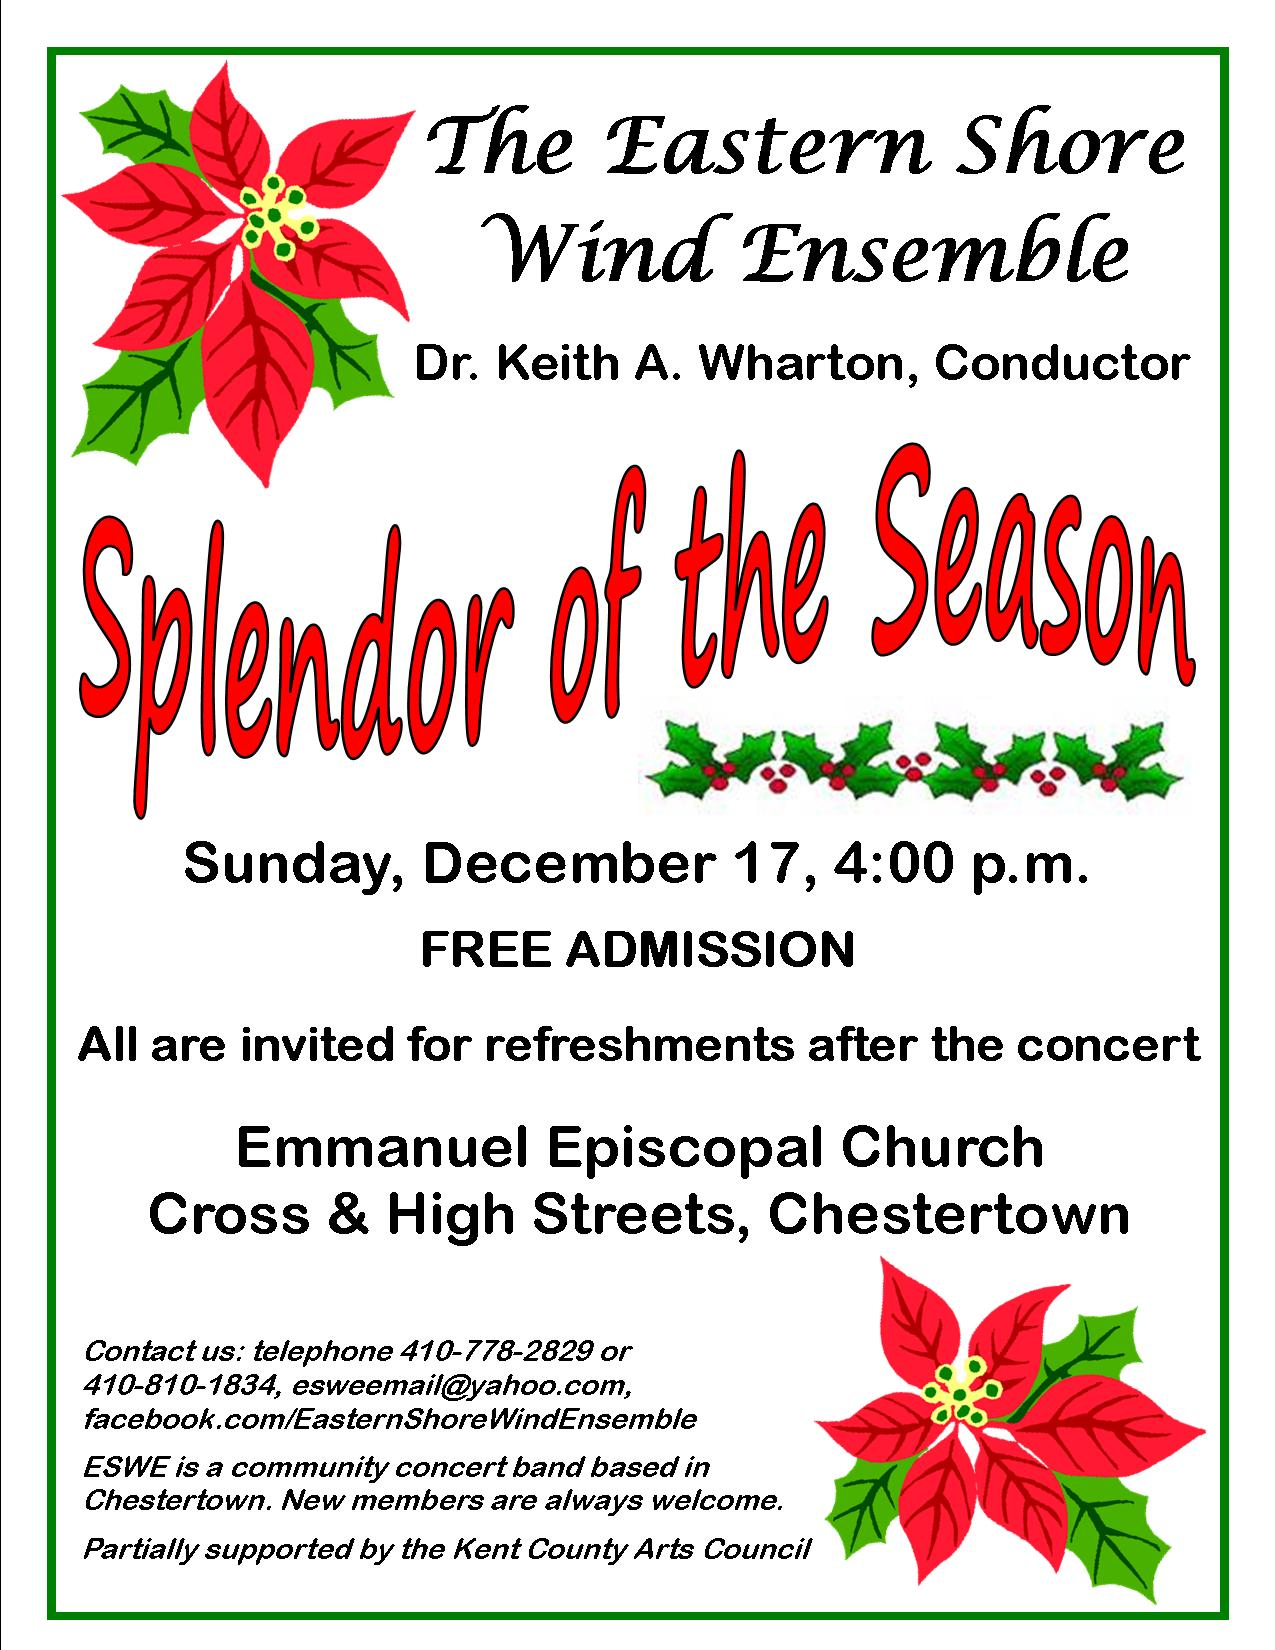 Splendor of the Season: Free Band Concert by the Eastern Shore Wind Ensemble